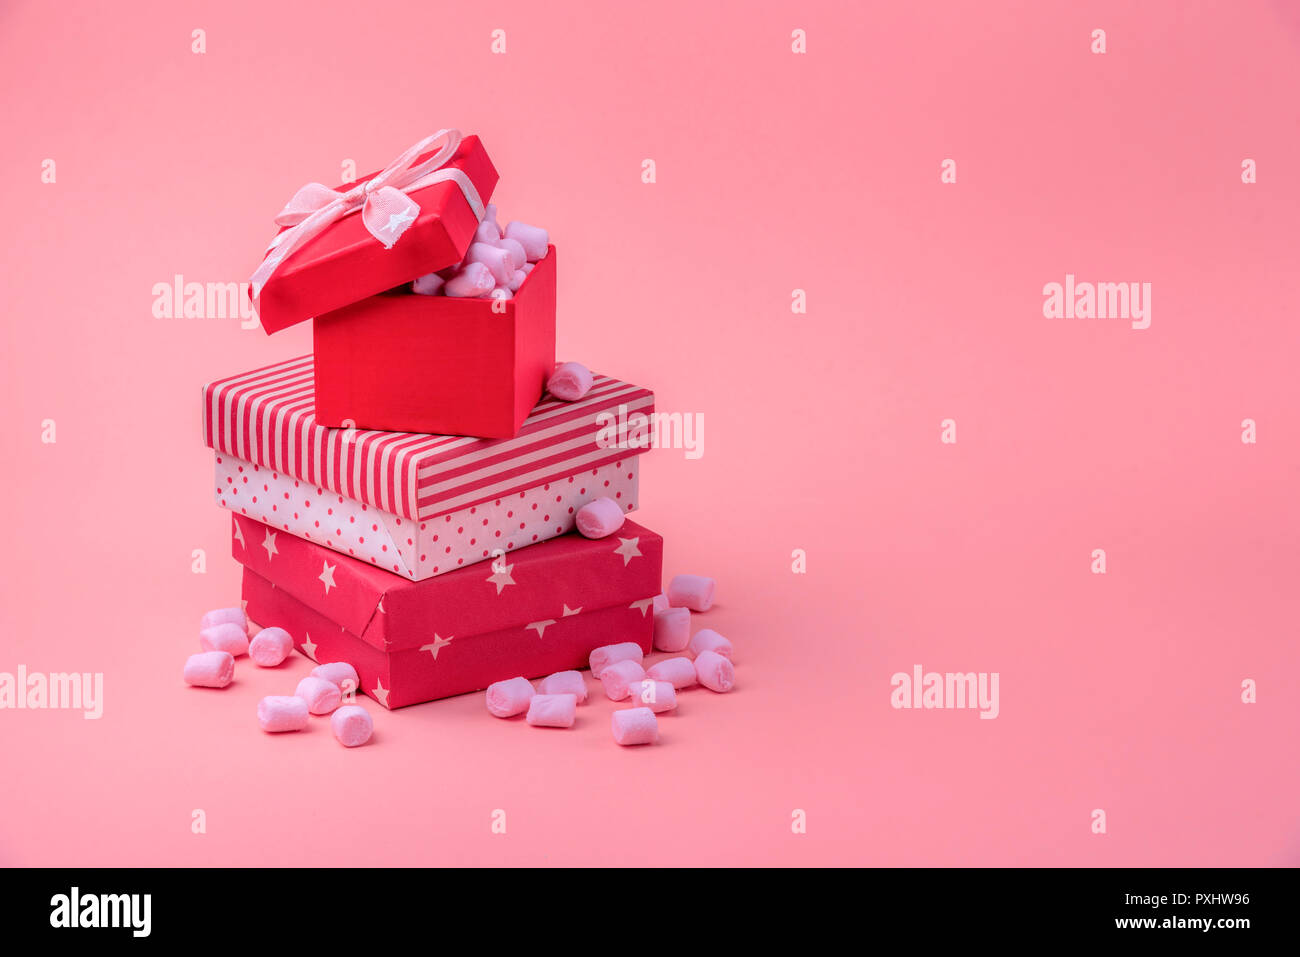 Christmas gifting theme image with a stack of gifts wrapped in ...